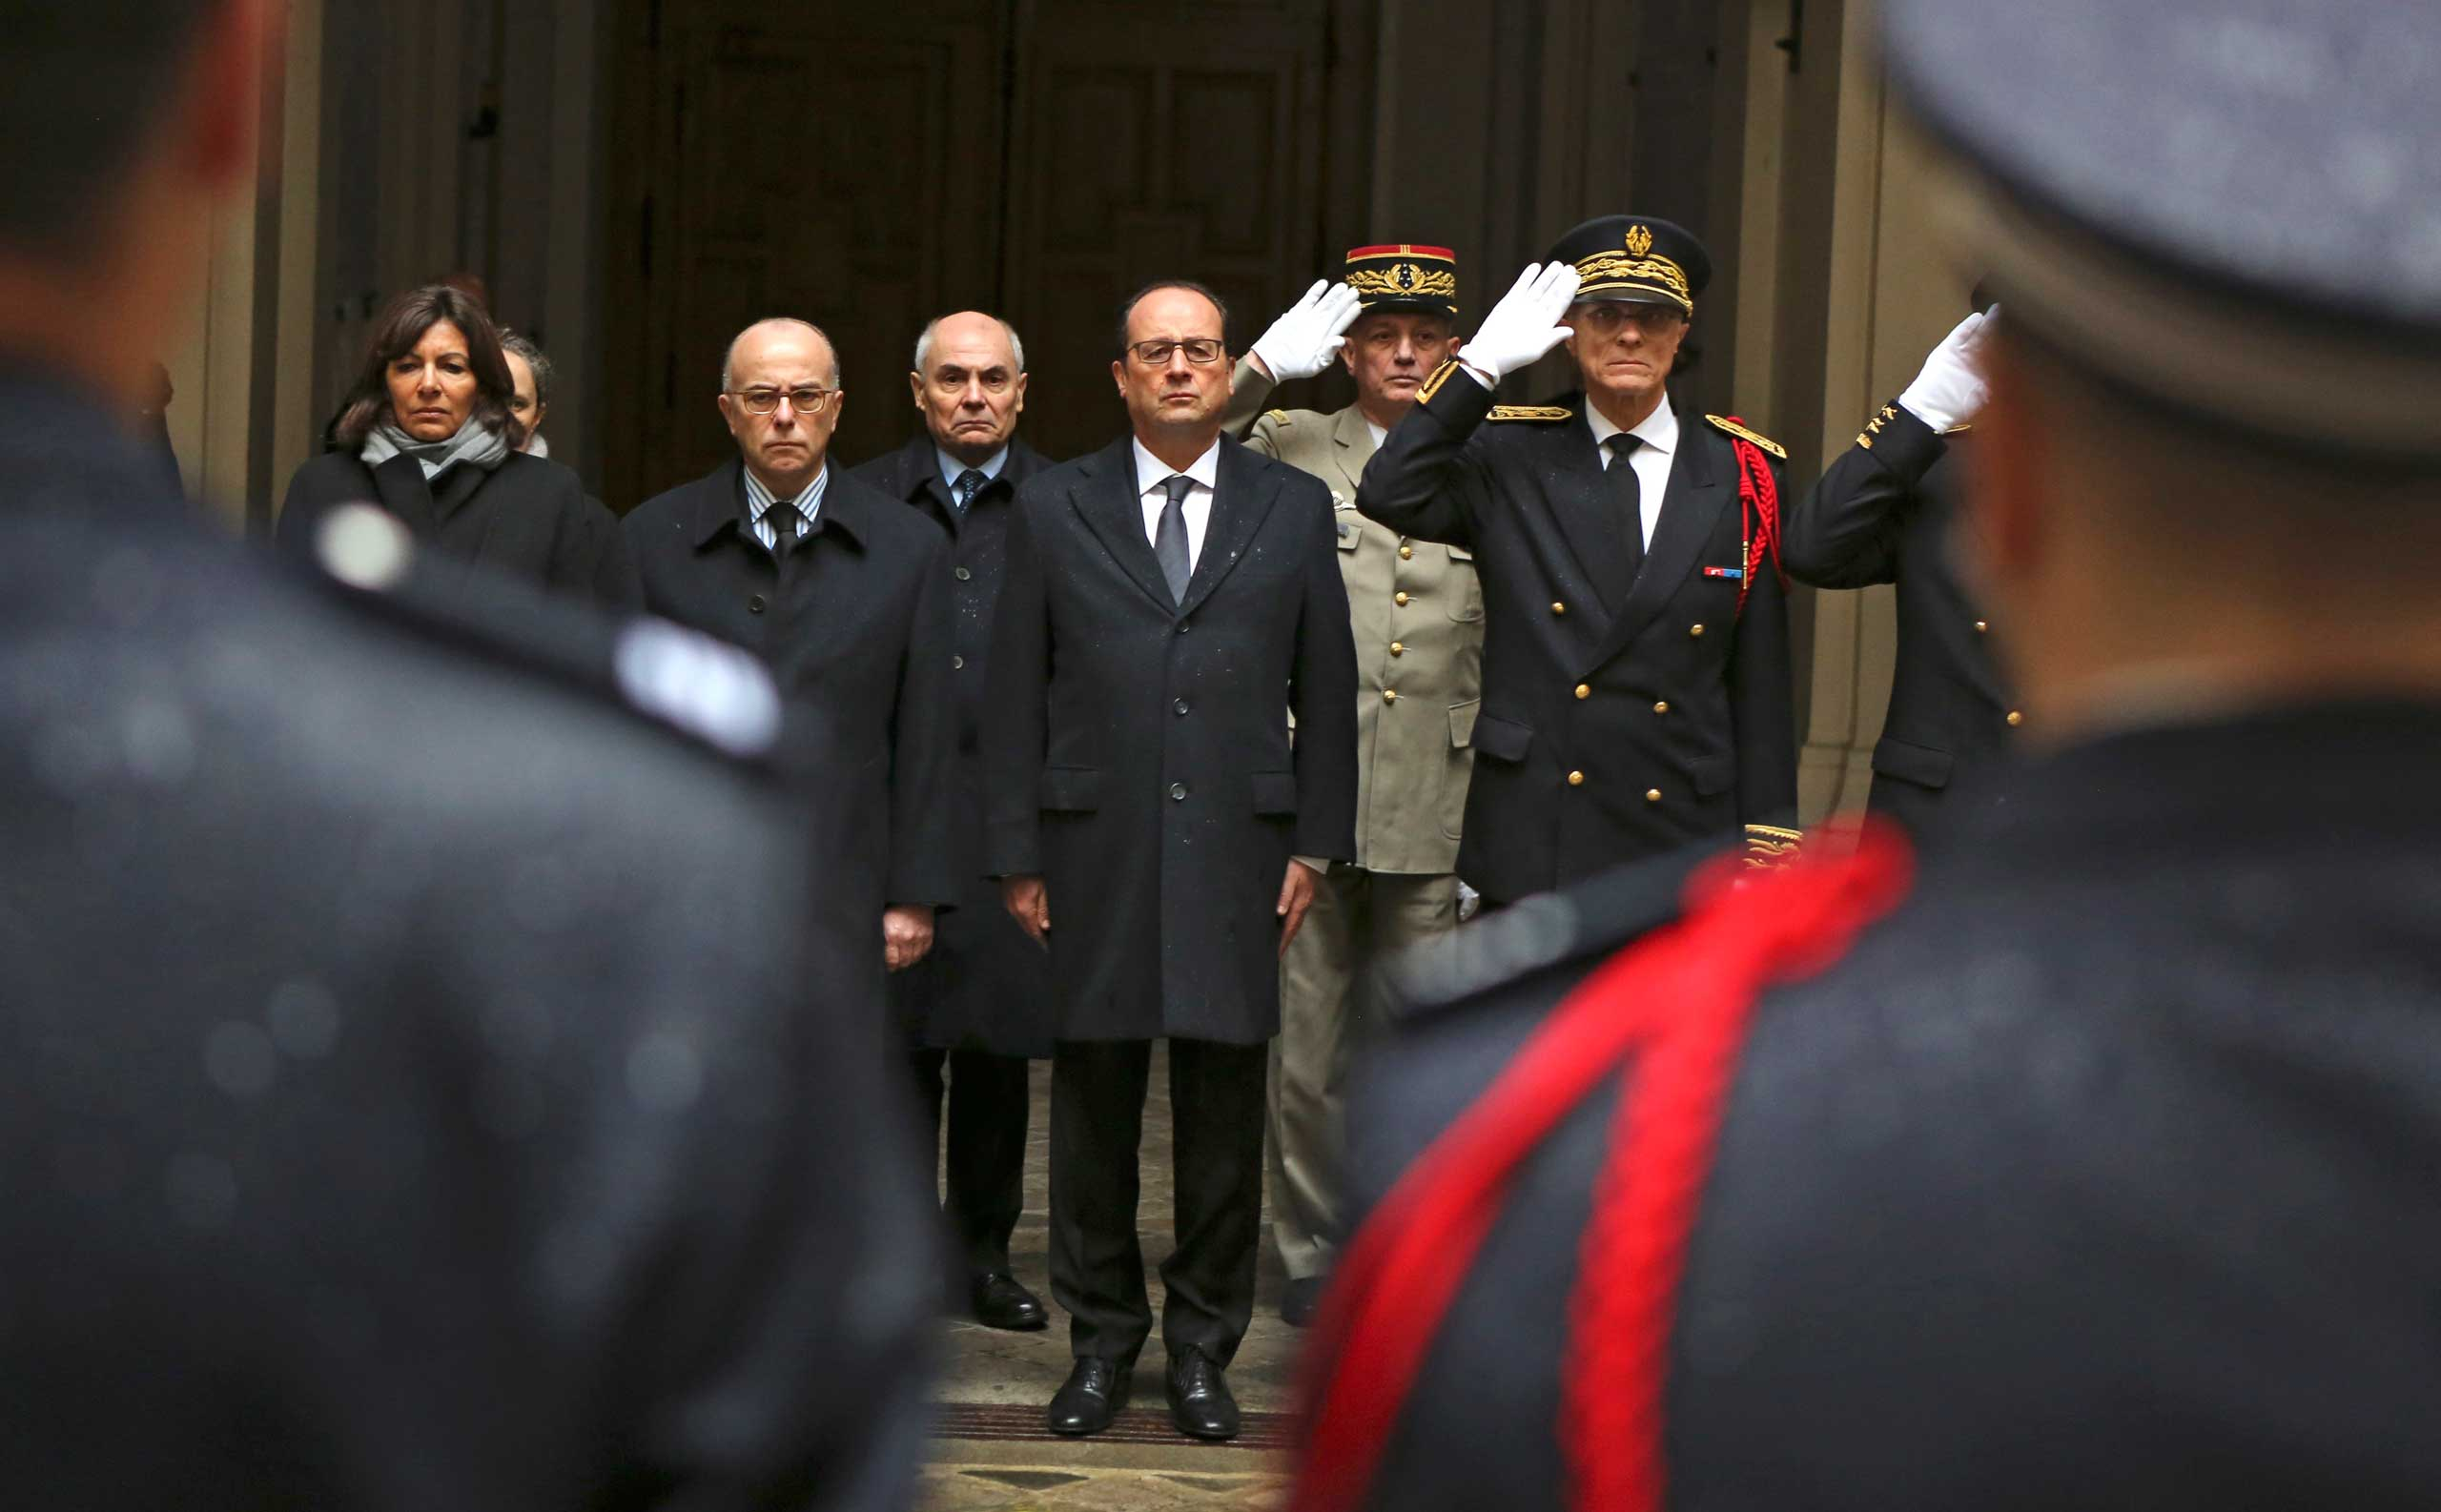 French President Francois Hollande, center, with interior minister Bernard Cazeneuve, left, and Paris police prefect Bernard Boucault, right, stands for a minute of silence, at Paris Prefecture in Paris, Jan. 8, 2015.